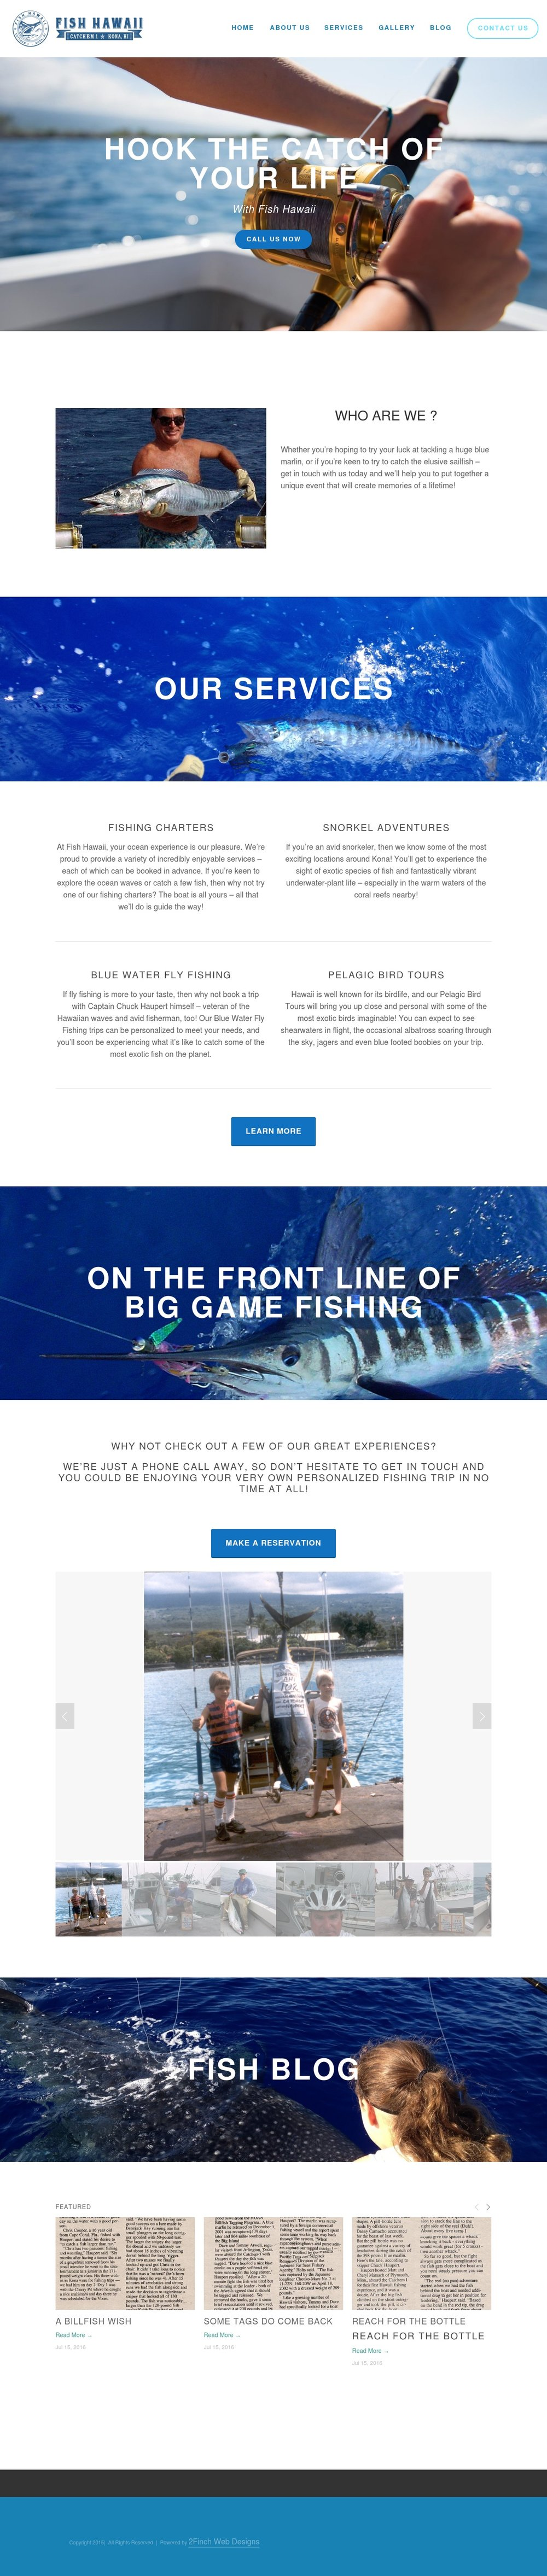 Fish Hawaii Website Design Project.jpeg